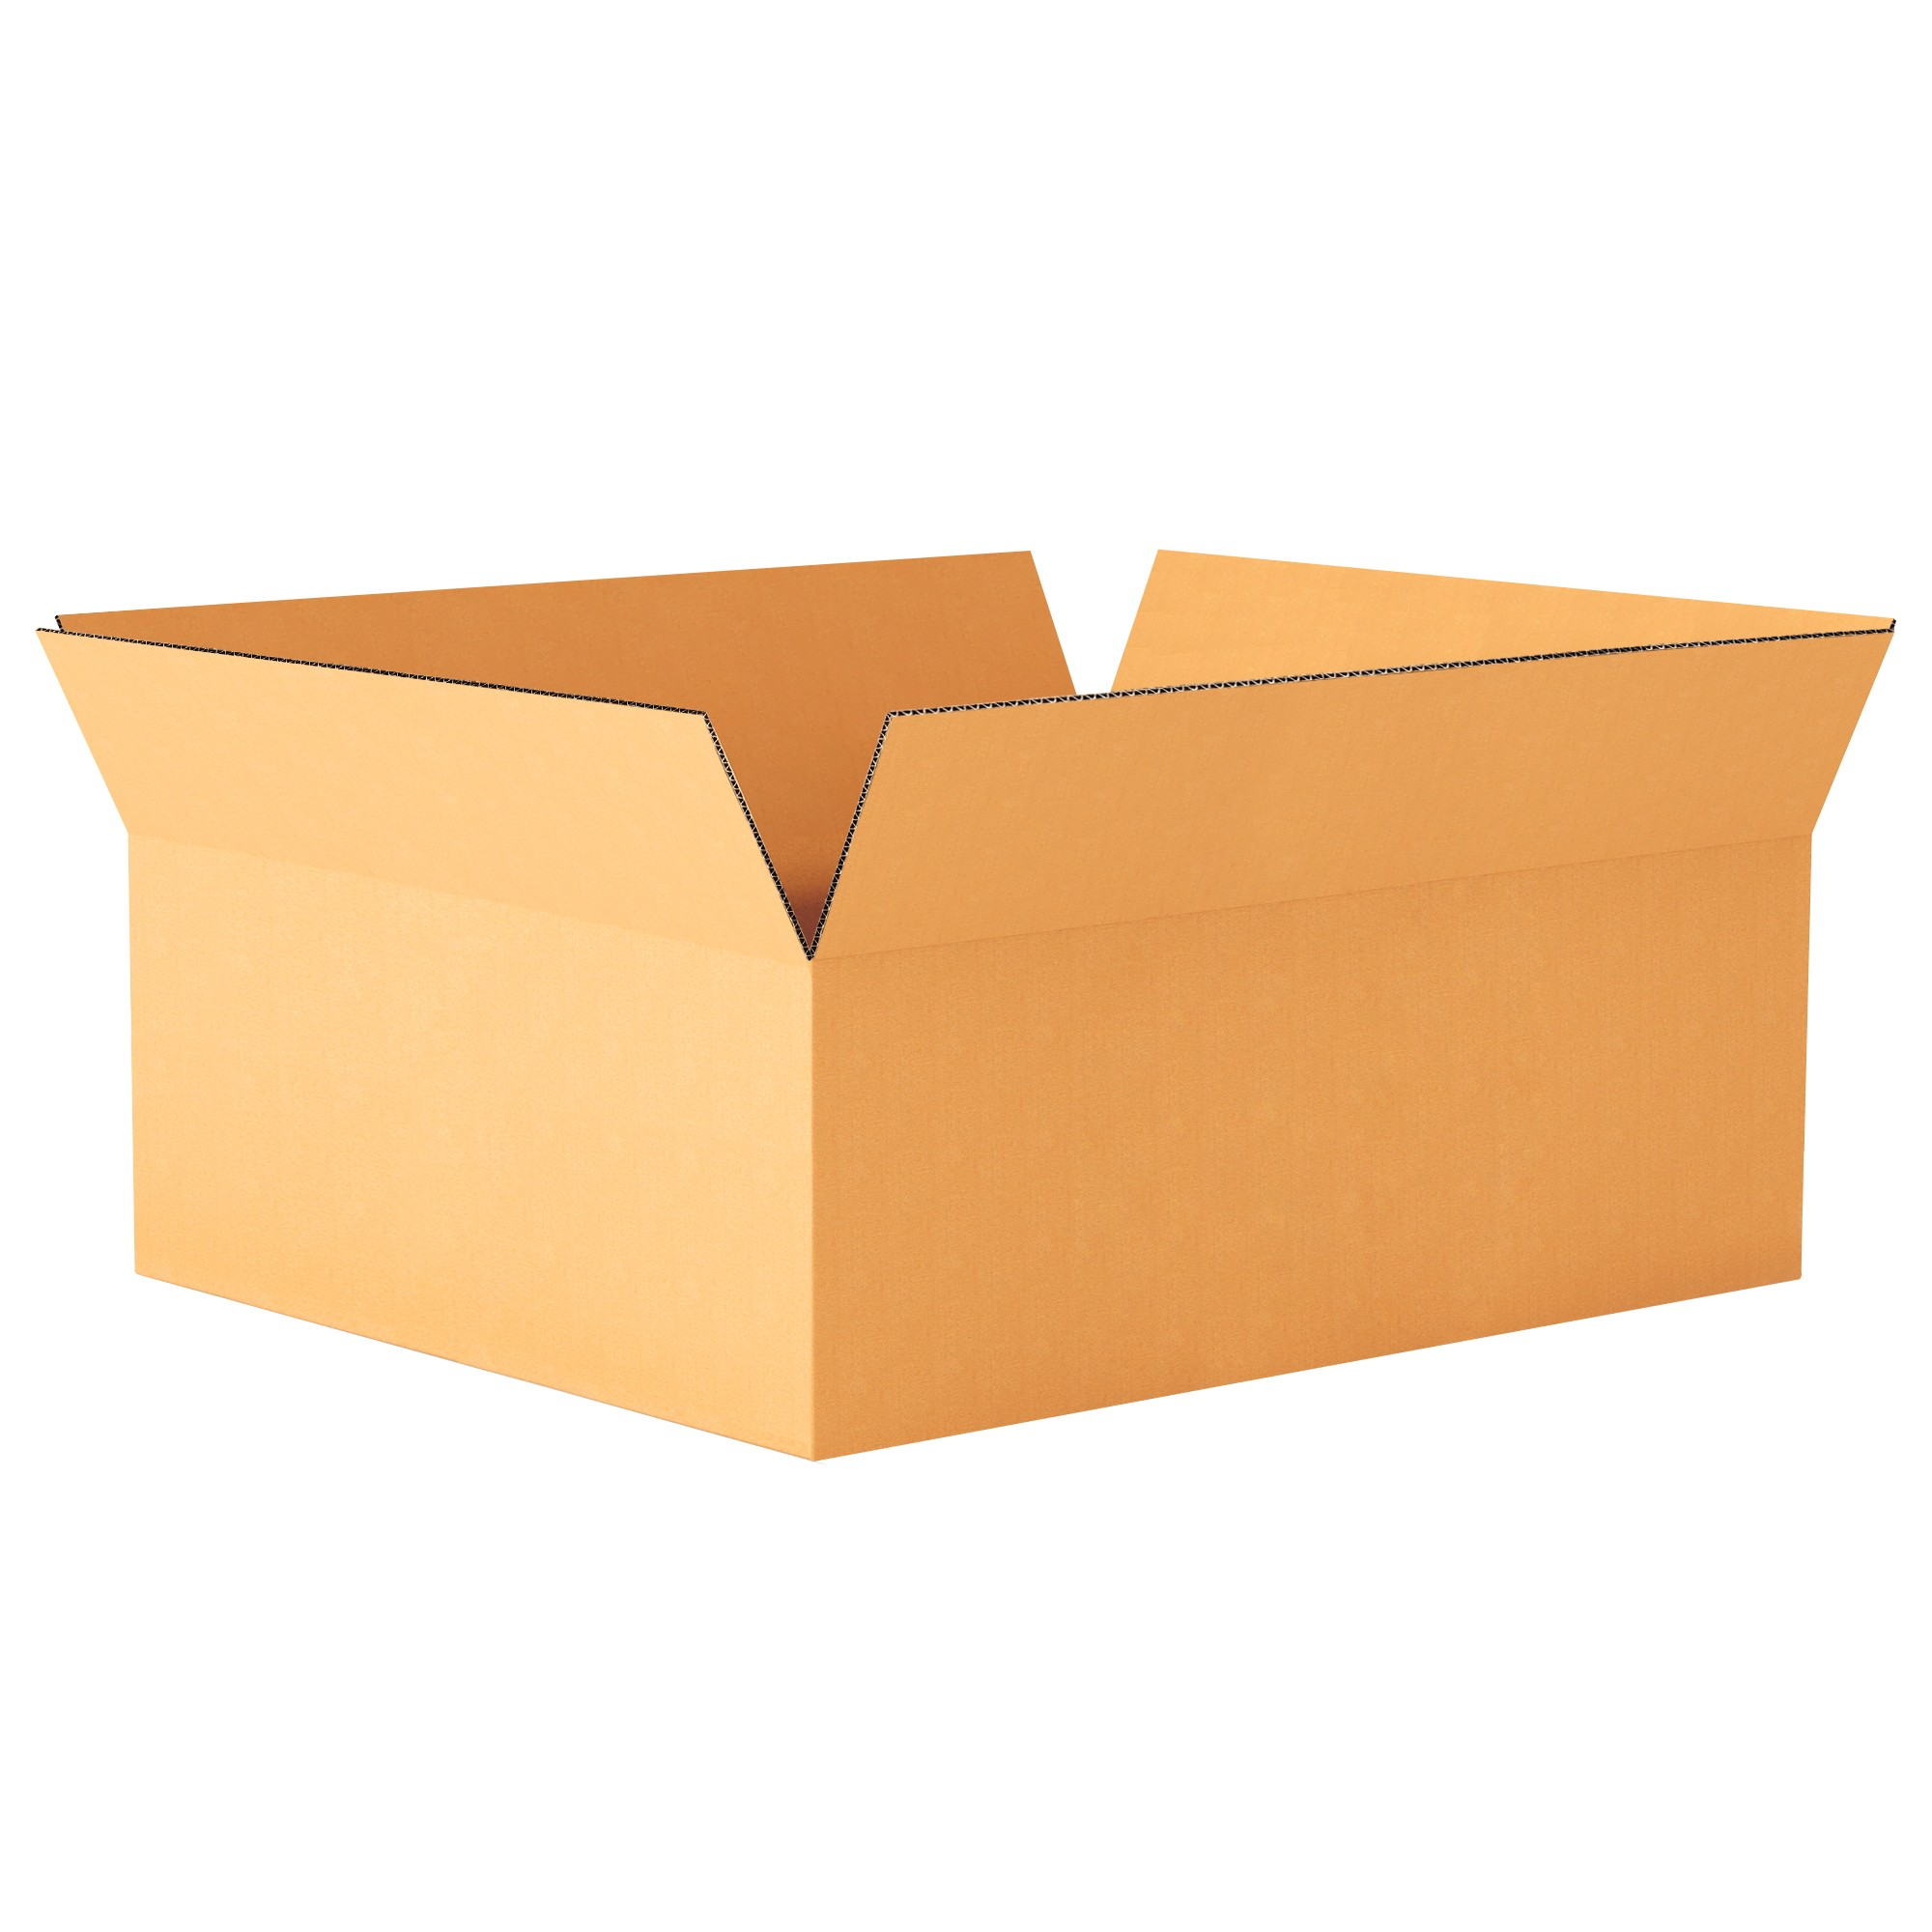 """TOTALPACK® 17 1/2 x 14 1/2 x 13"""" Single Wall Corrugated #44 Boxes 25 Units"""